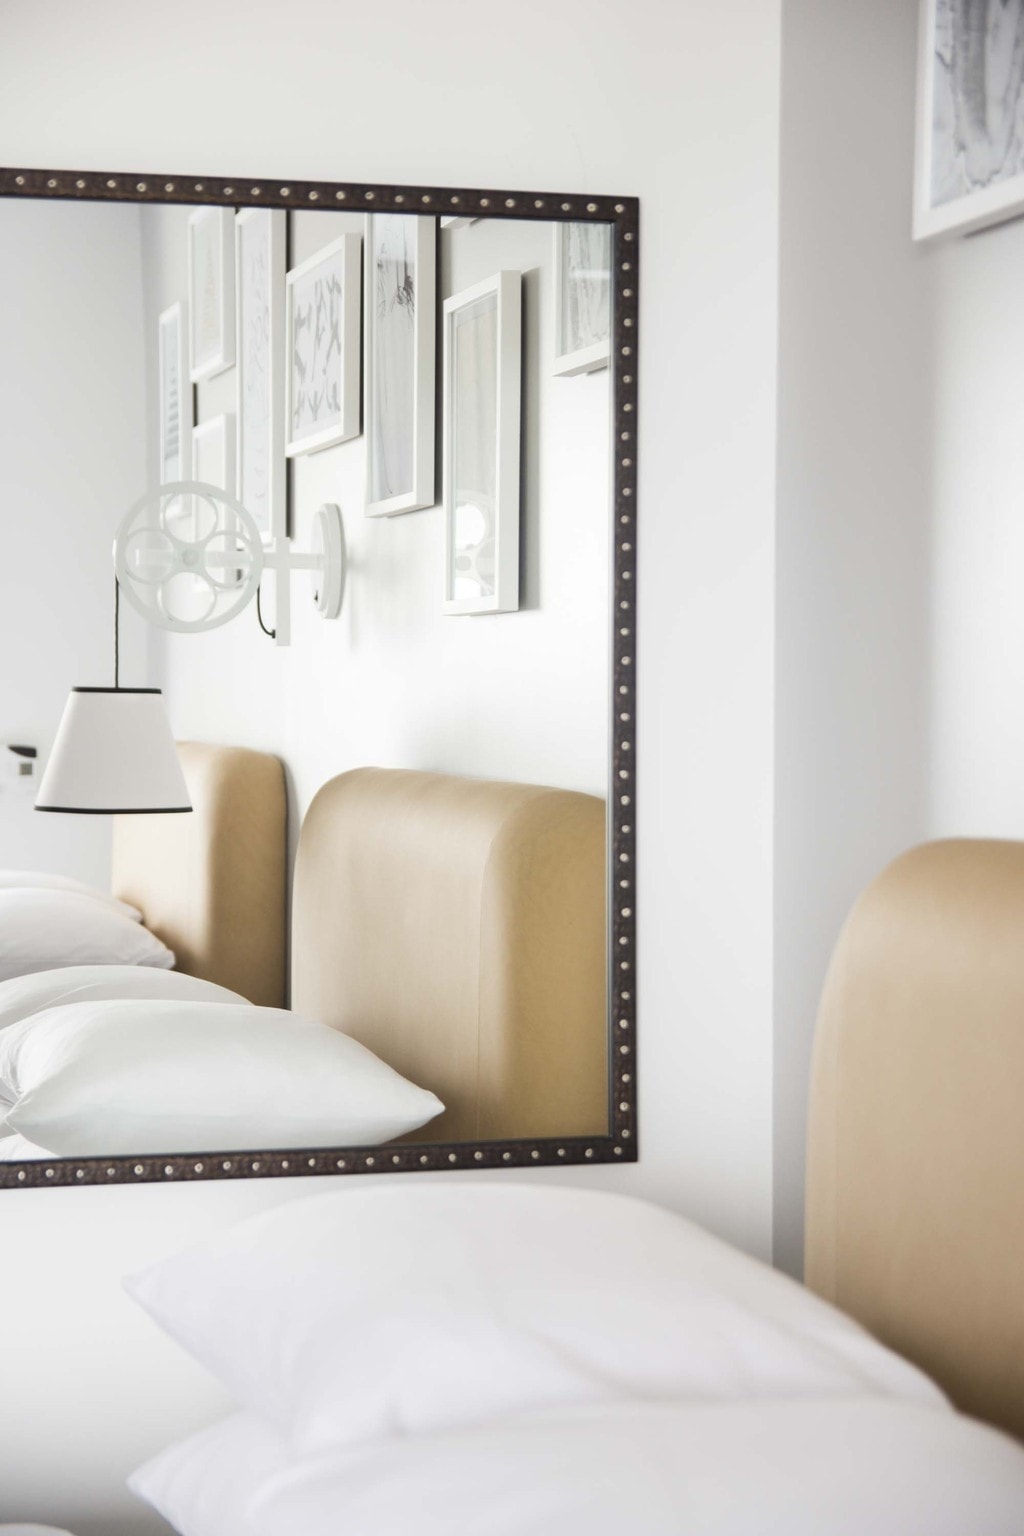 Modern bedroom design at the Renaissance Atlanta Airport hotel on Thou Swell @thouswellblog